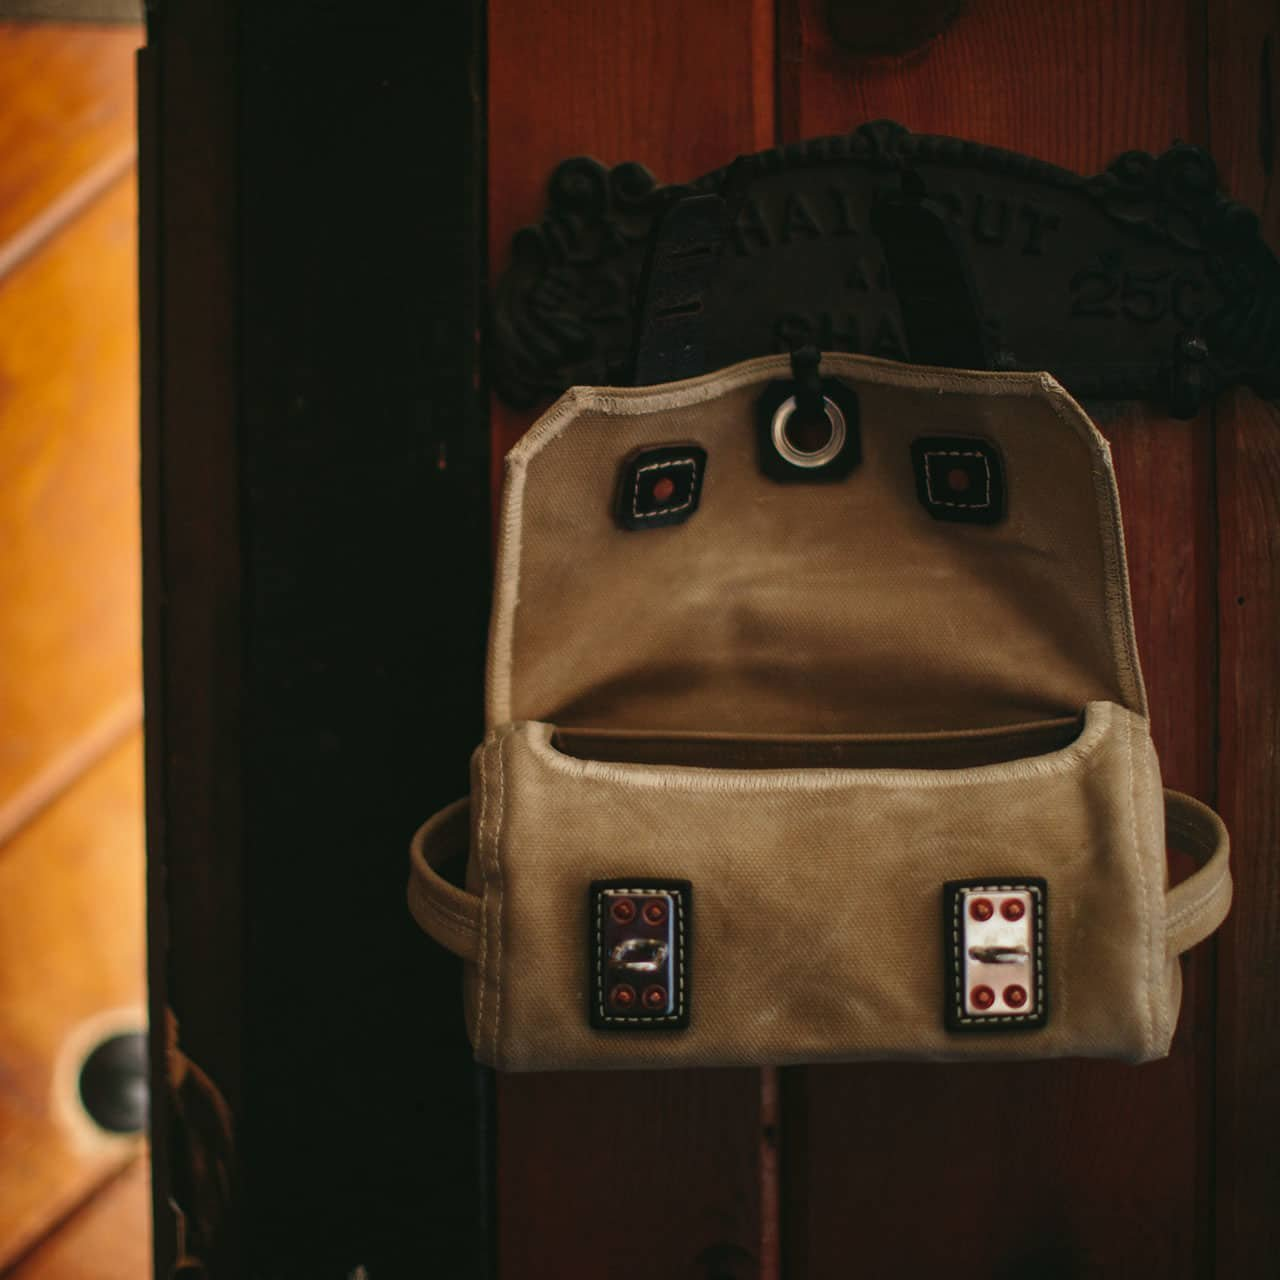 Hanging Canvas and Leather Mens Toiletry Bag 100 Year Warranty 03-10-0021-MD-SA-C Saddleback Leather Co Mountain Back Canvas Dopp Kit